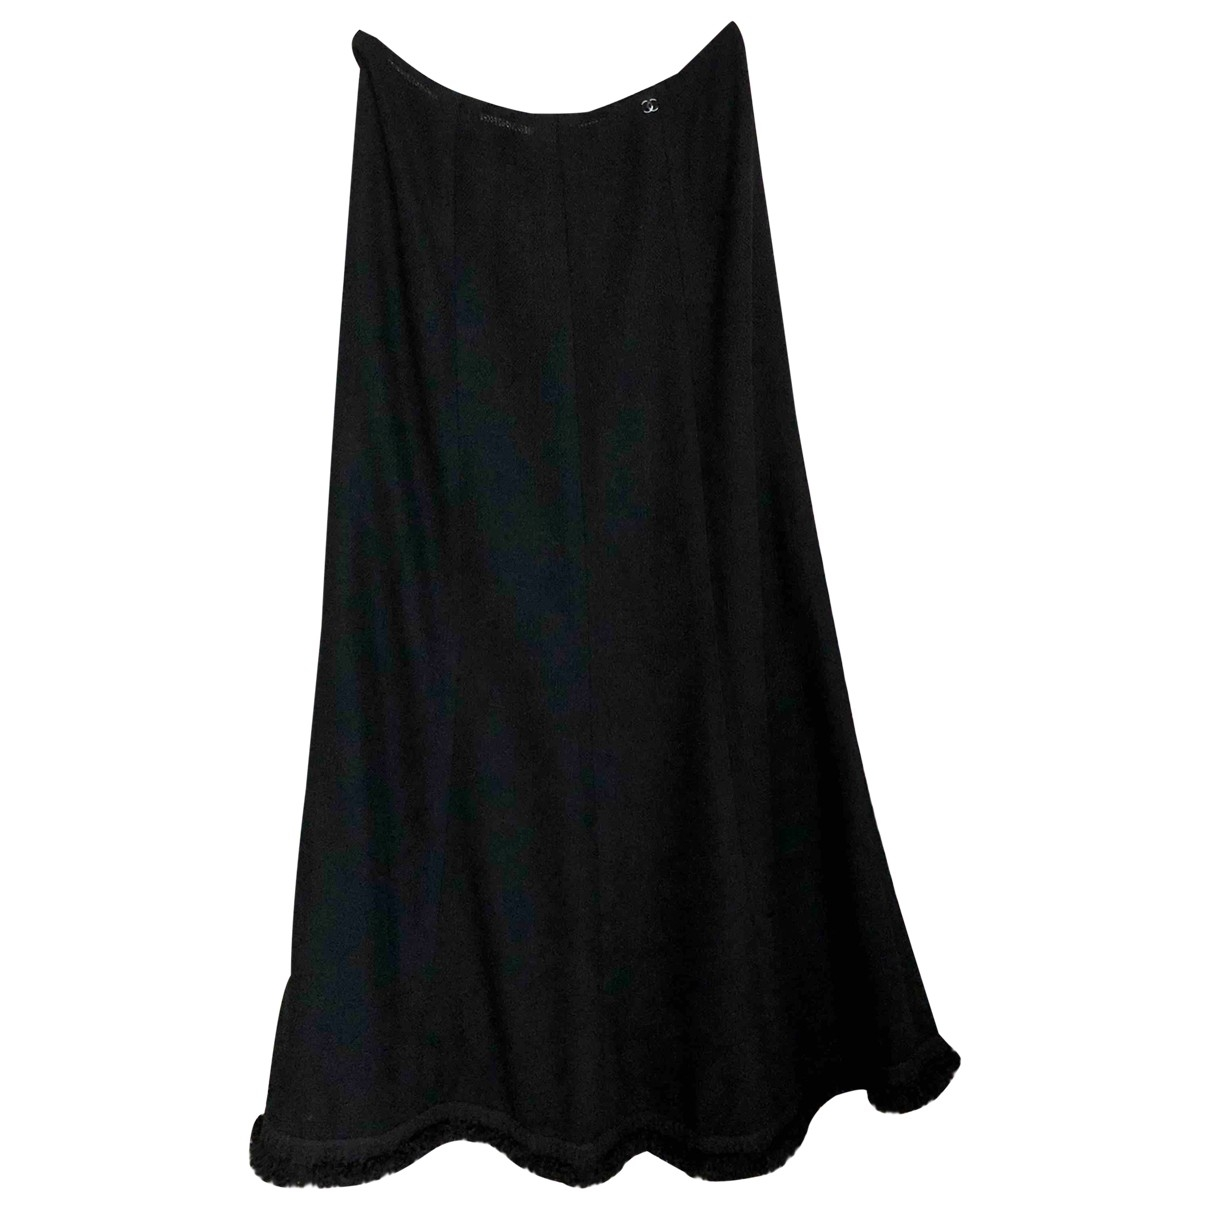 Chanel \N Black Wool skirt for Women 40 FR